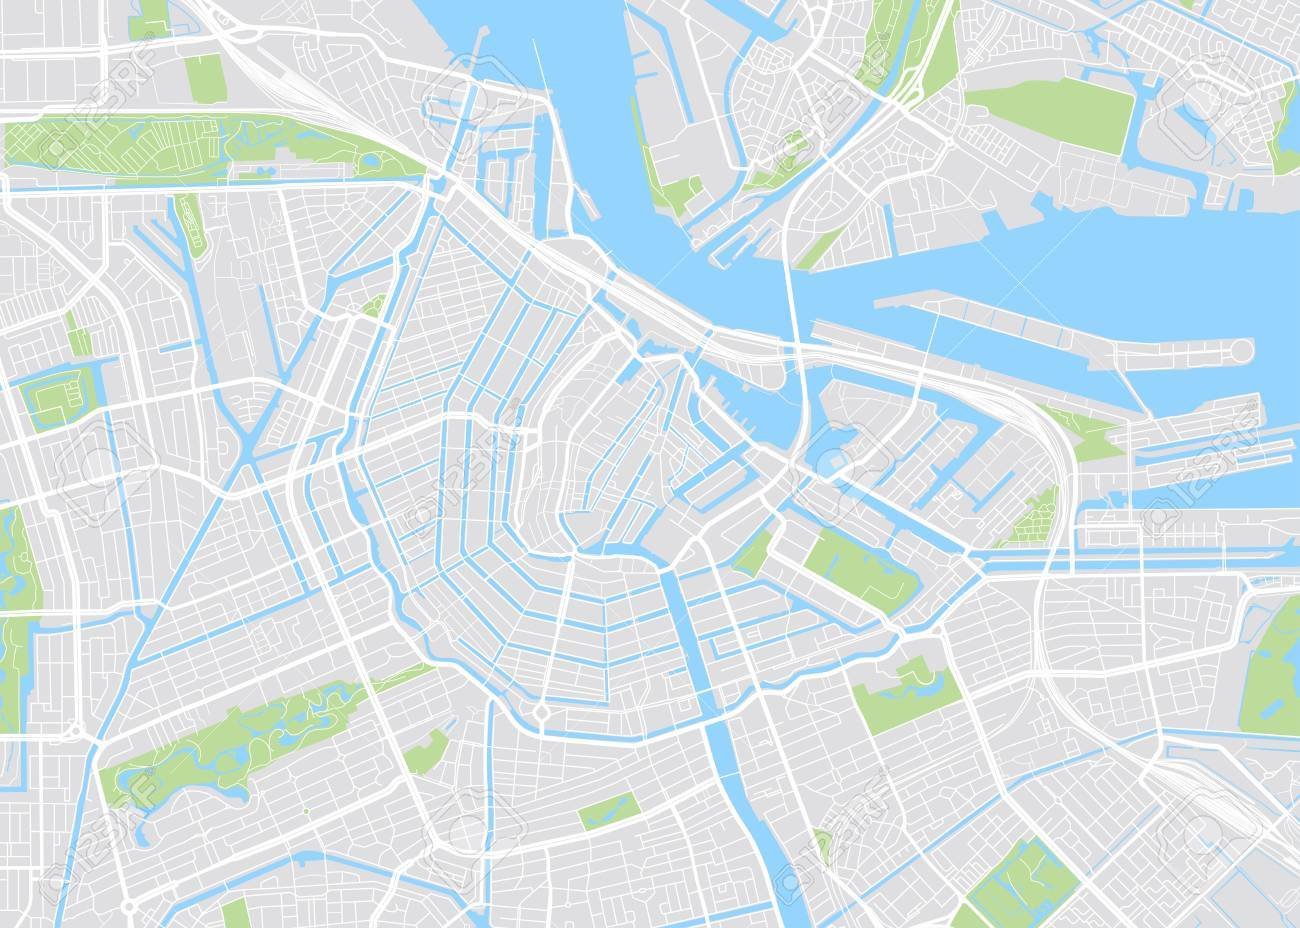 Amsterdam colored vector map on copenhagen map, moscow map, europe map, athens map, holland map, denmark map, israel map, world map, kinderdijk map, the netherlands map, edinburgh map, belgium map, leiden map, madrid map, hamburg map, constantinople map, berlin map, rotterdam map, budapest on map, stockholm on map,